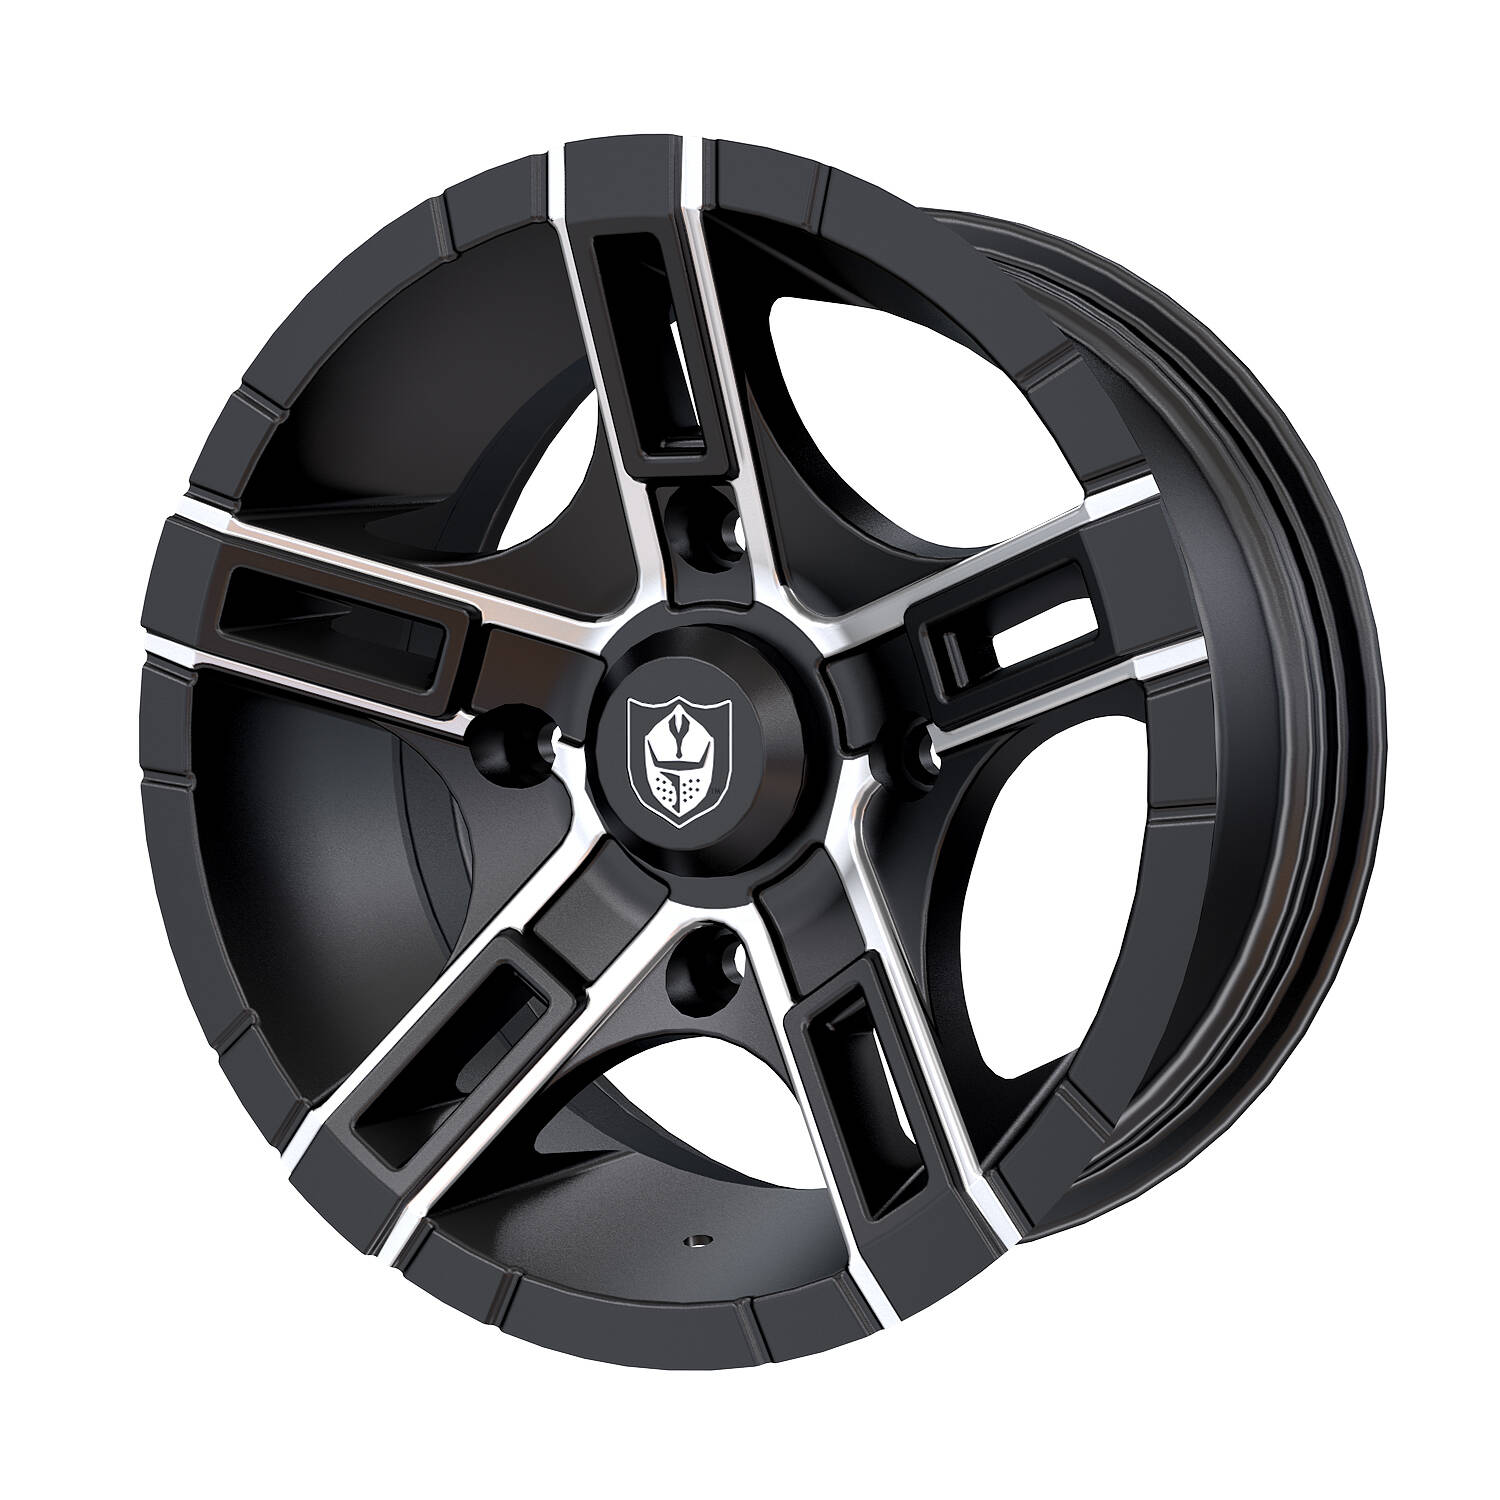 Pro Armor® Flare Wheel, Accent Front/Rear R15